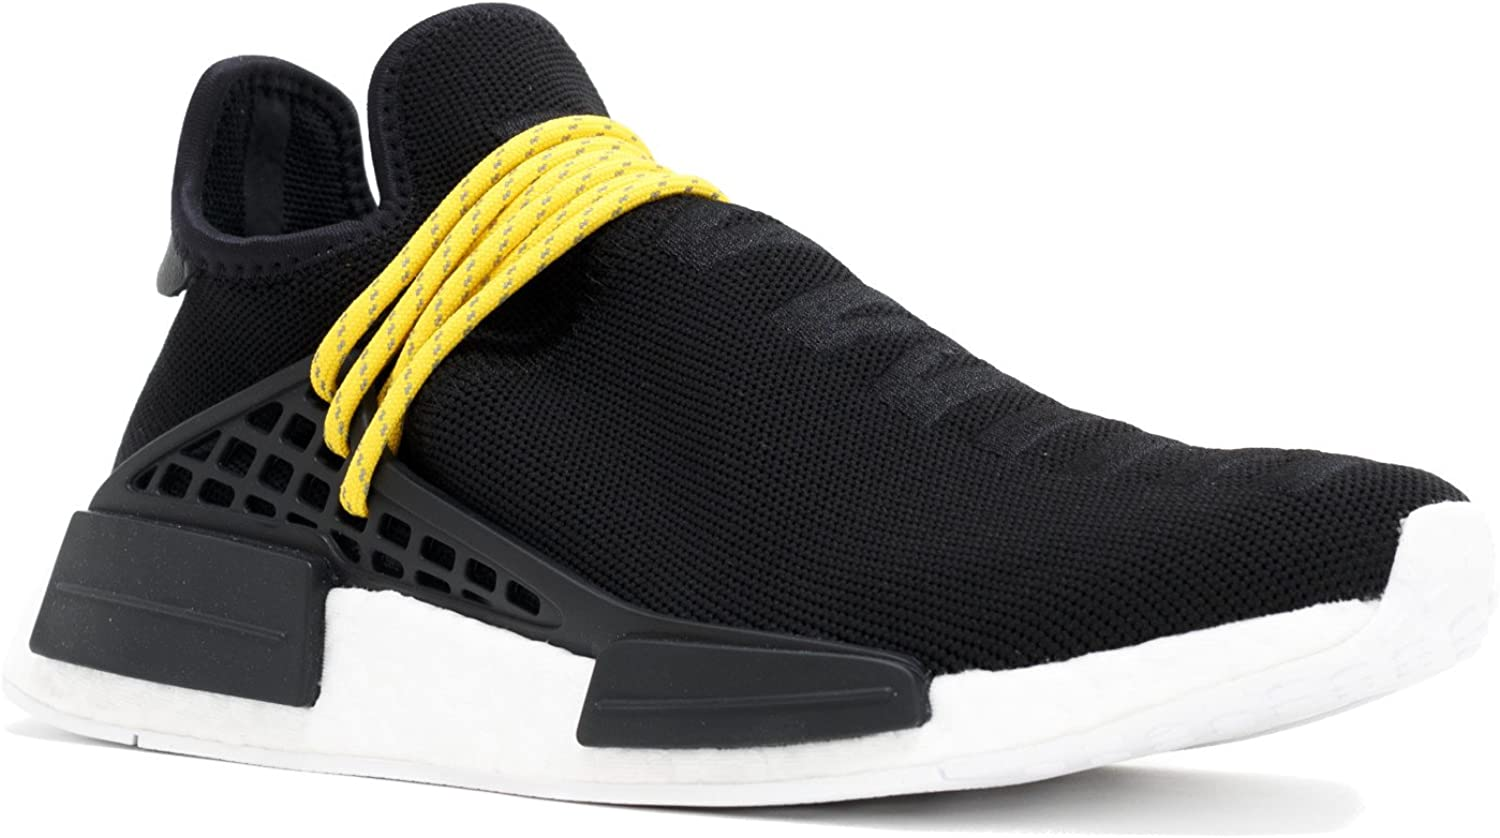 Adidas PW PW PW Human Race NMD'Pharell 'BB3068  mode galleria